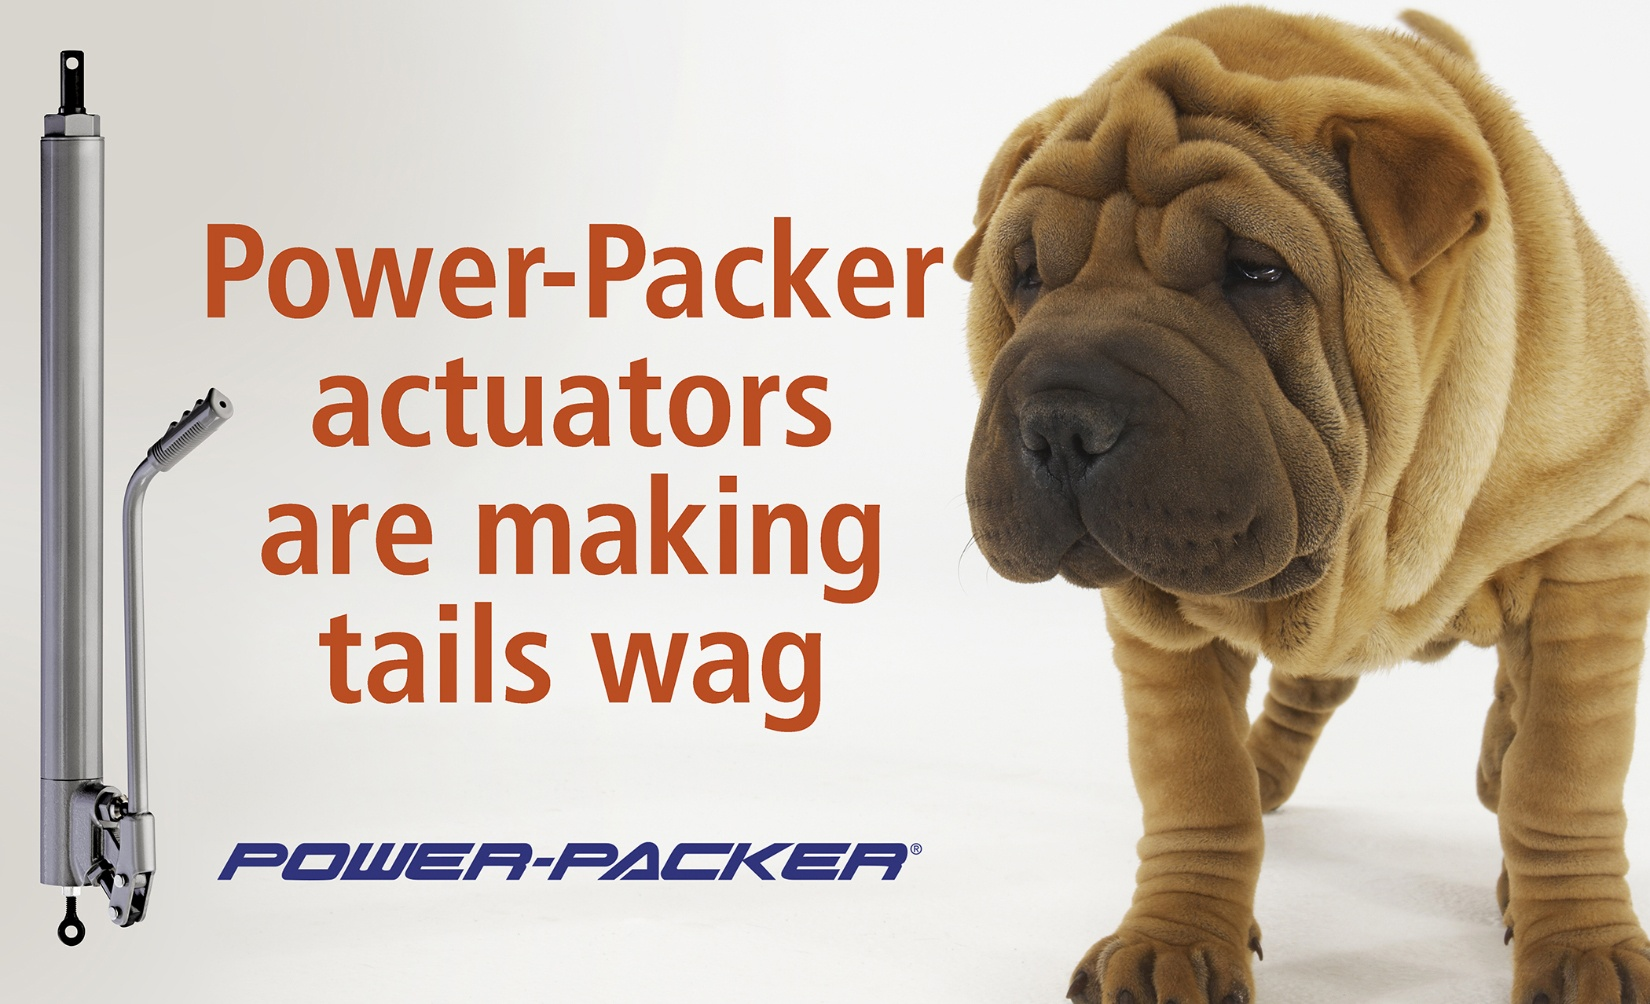 Power-Packer